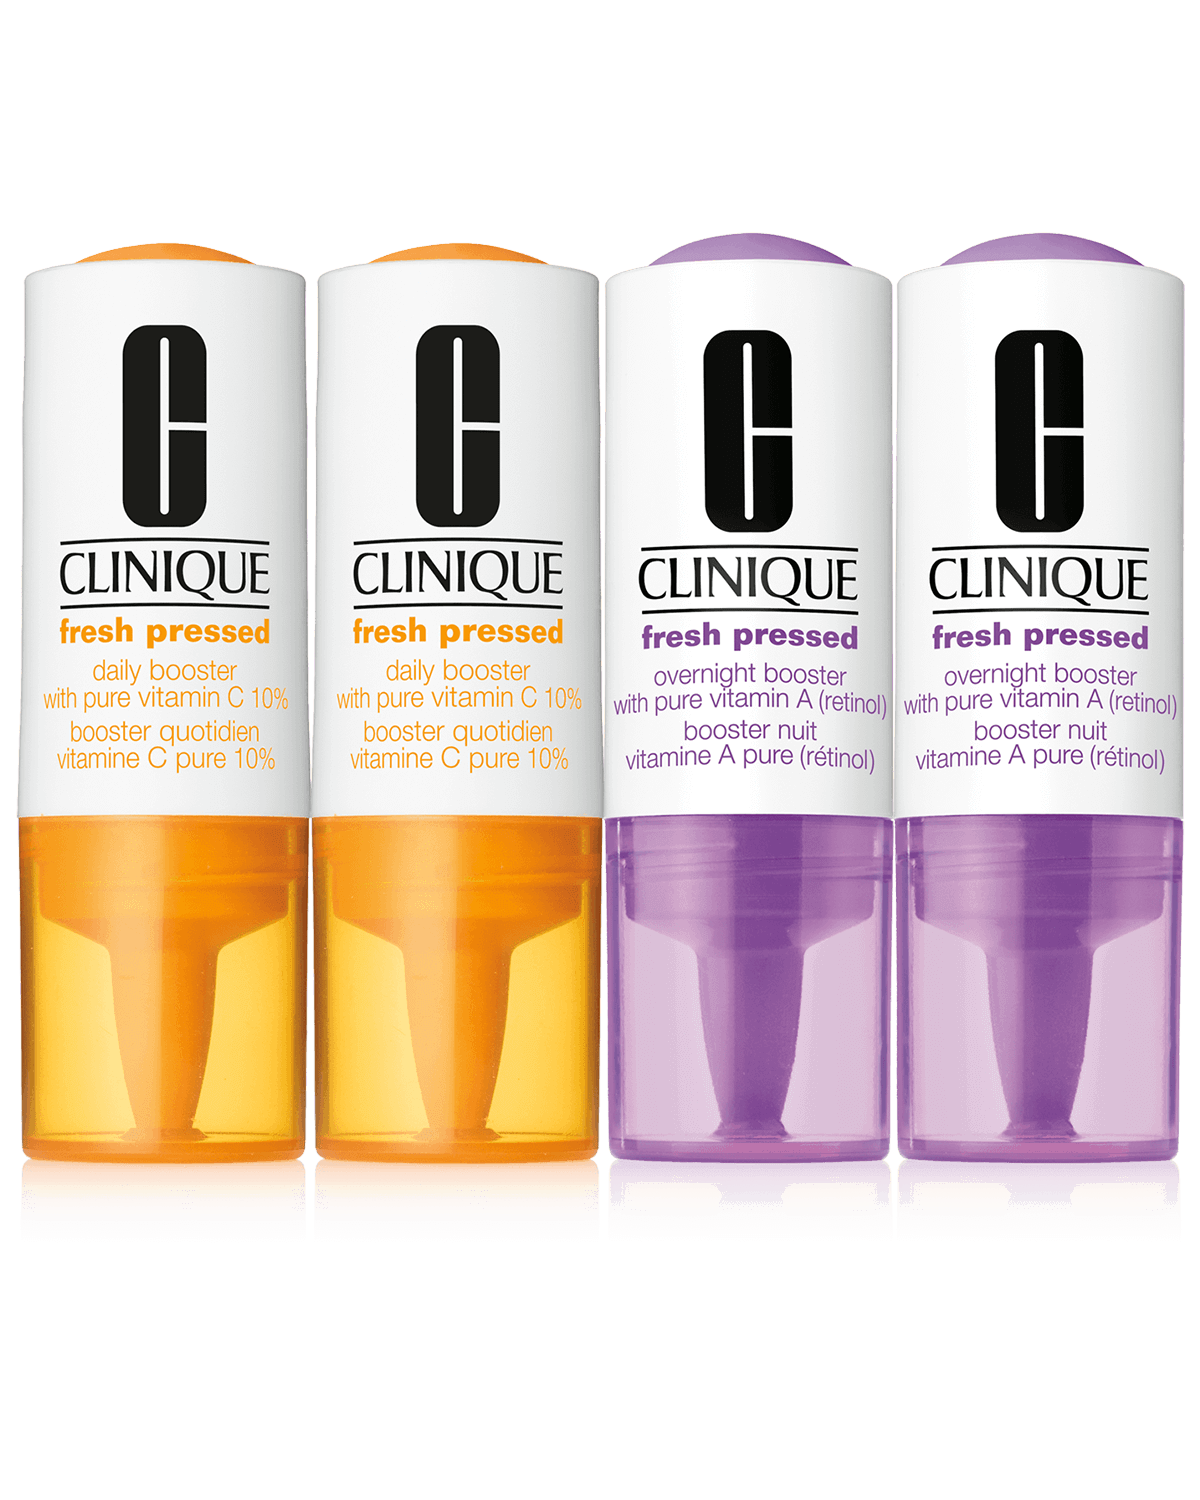 Clinique Fresh Pressed Clinical™ amplificateurs quotidien et de nuit avec vitamines C à 10 % et A (rétinol) pures